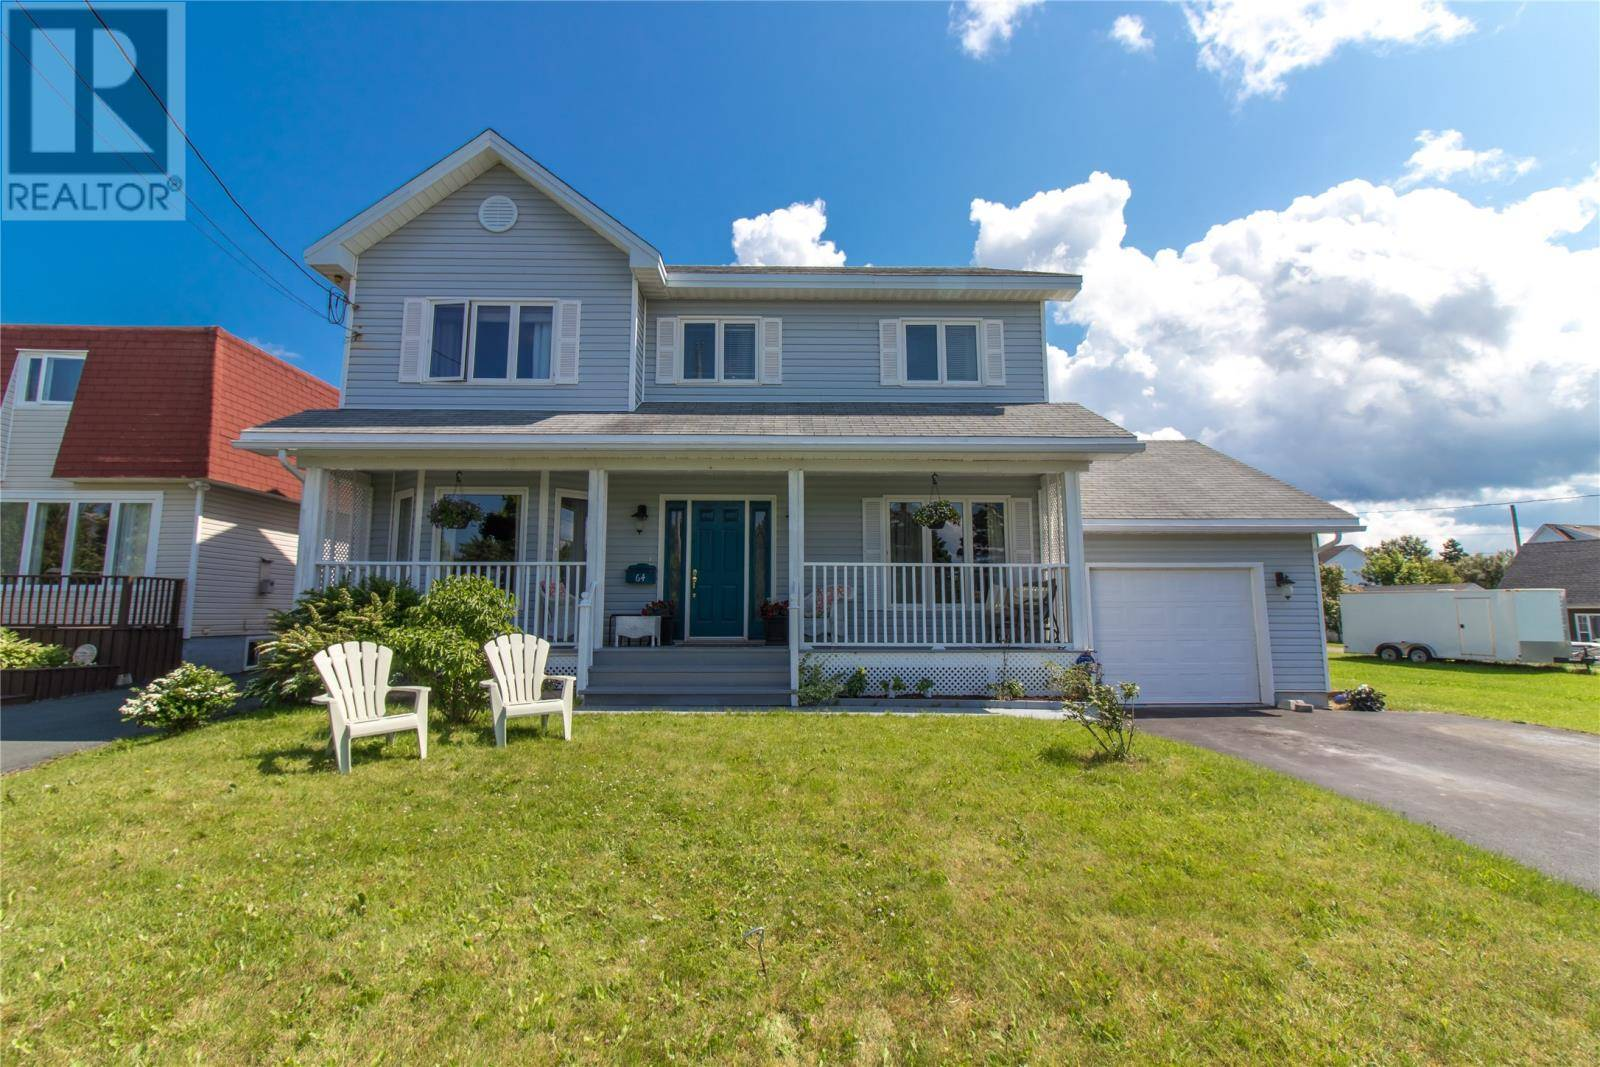 House for sale at 64 Gully Pond Rd Conception Bay South Newfoundland - MLS: 1200336